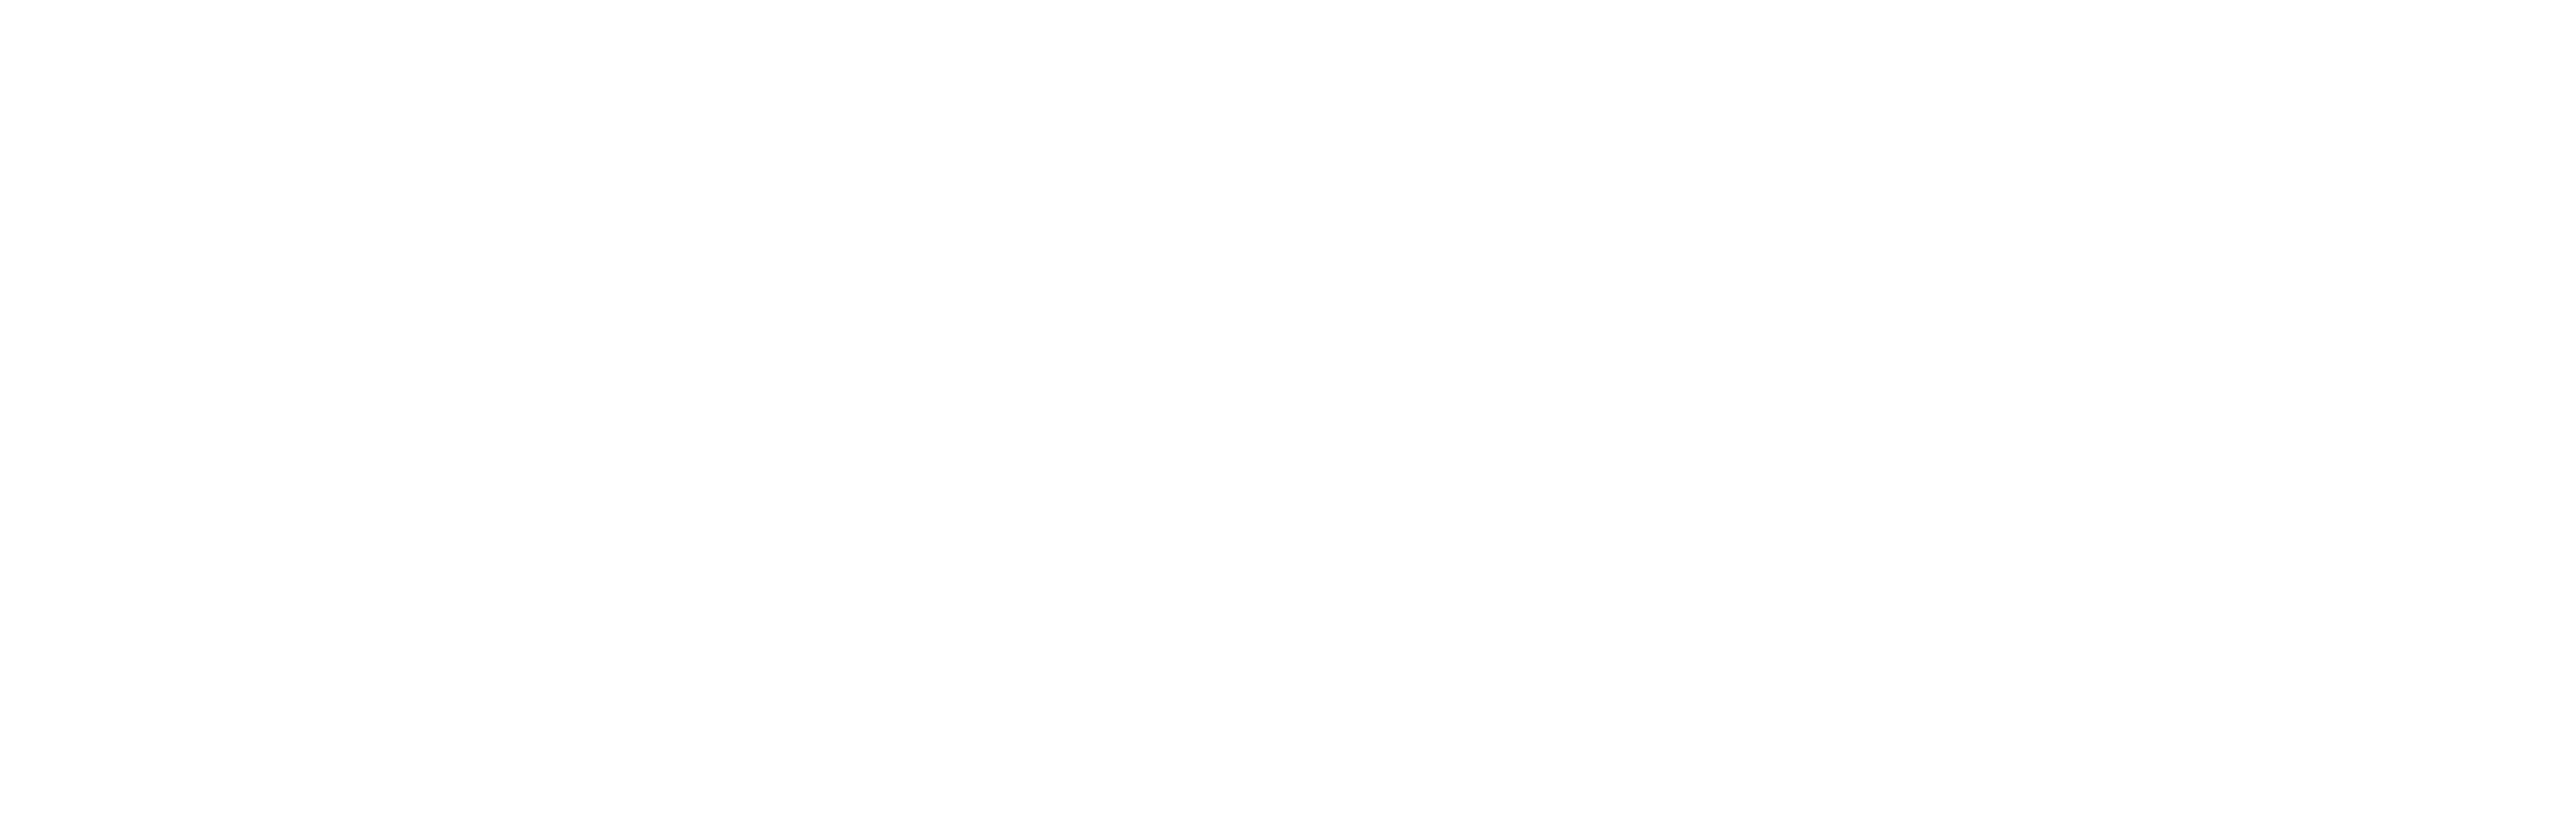 Gloria's Florist - Flower Delivery in Elmwood Park, NJ